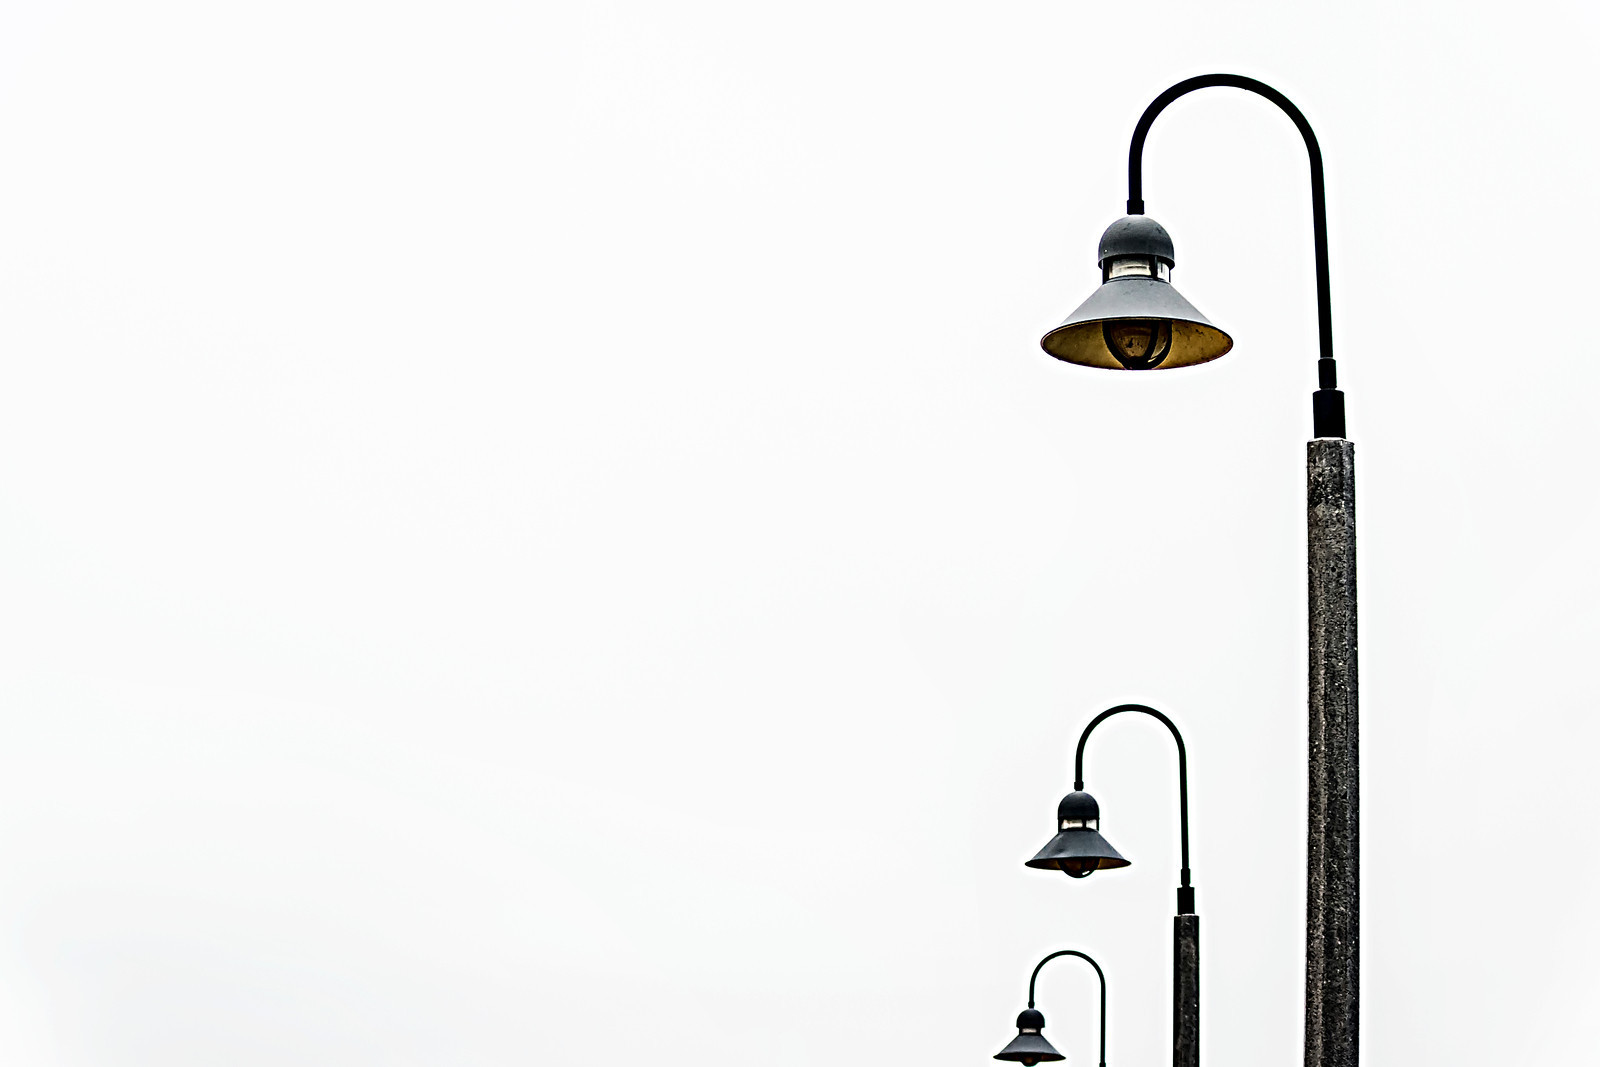 Tiered Lamp Posts